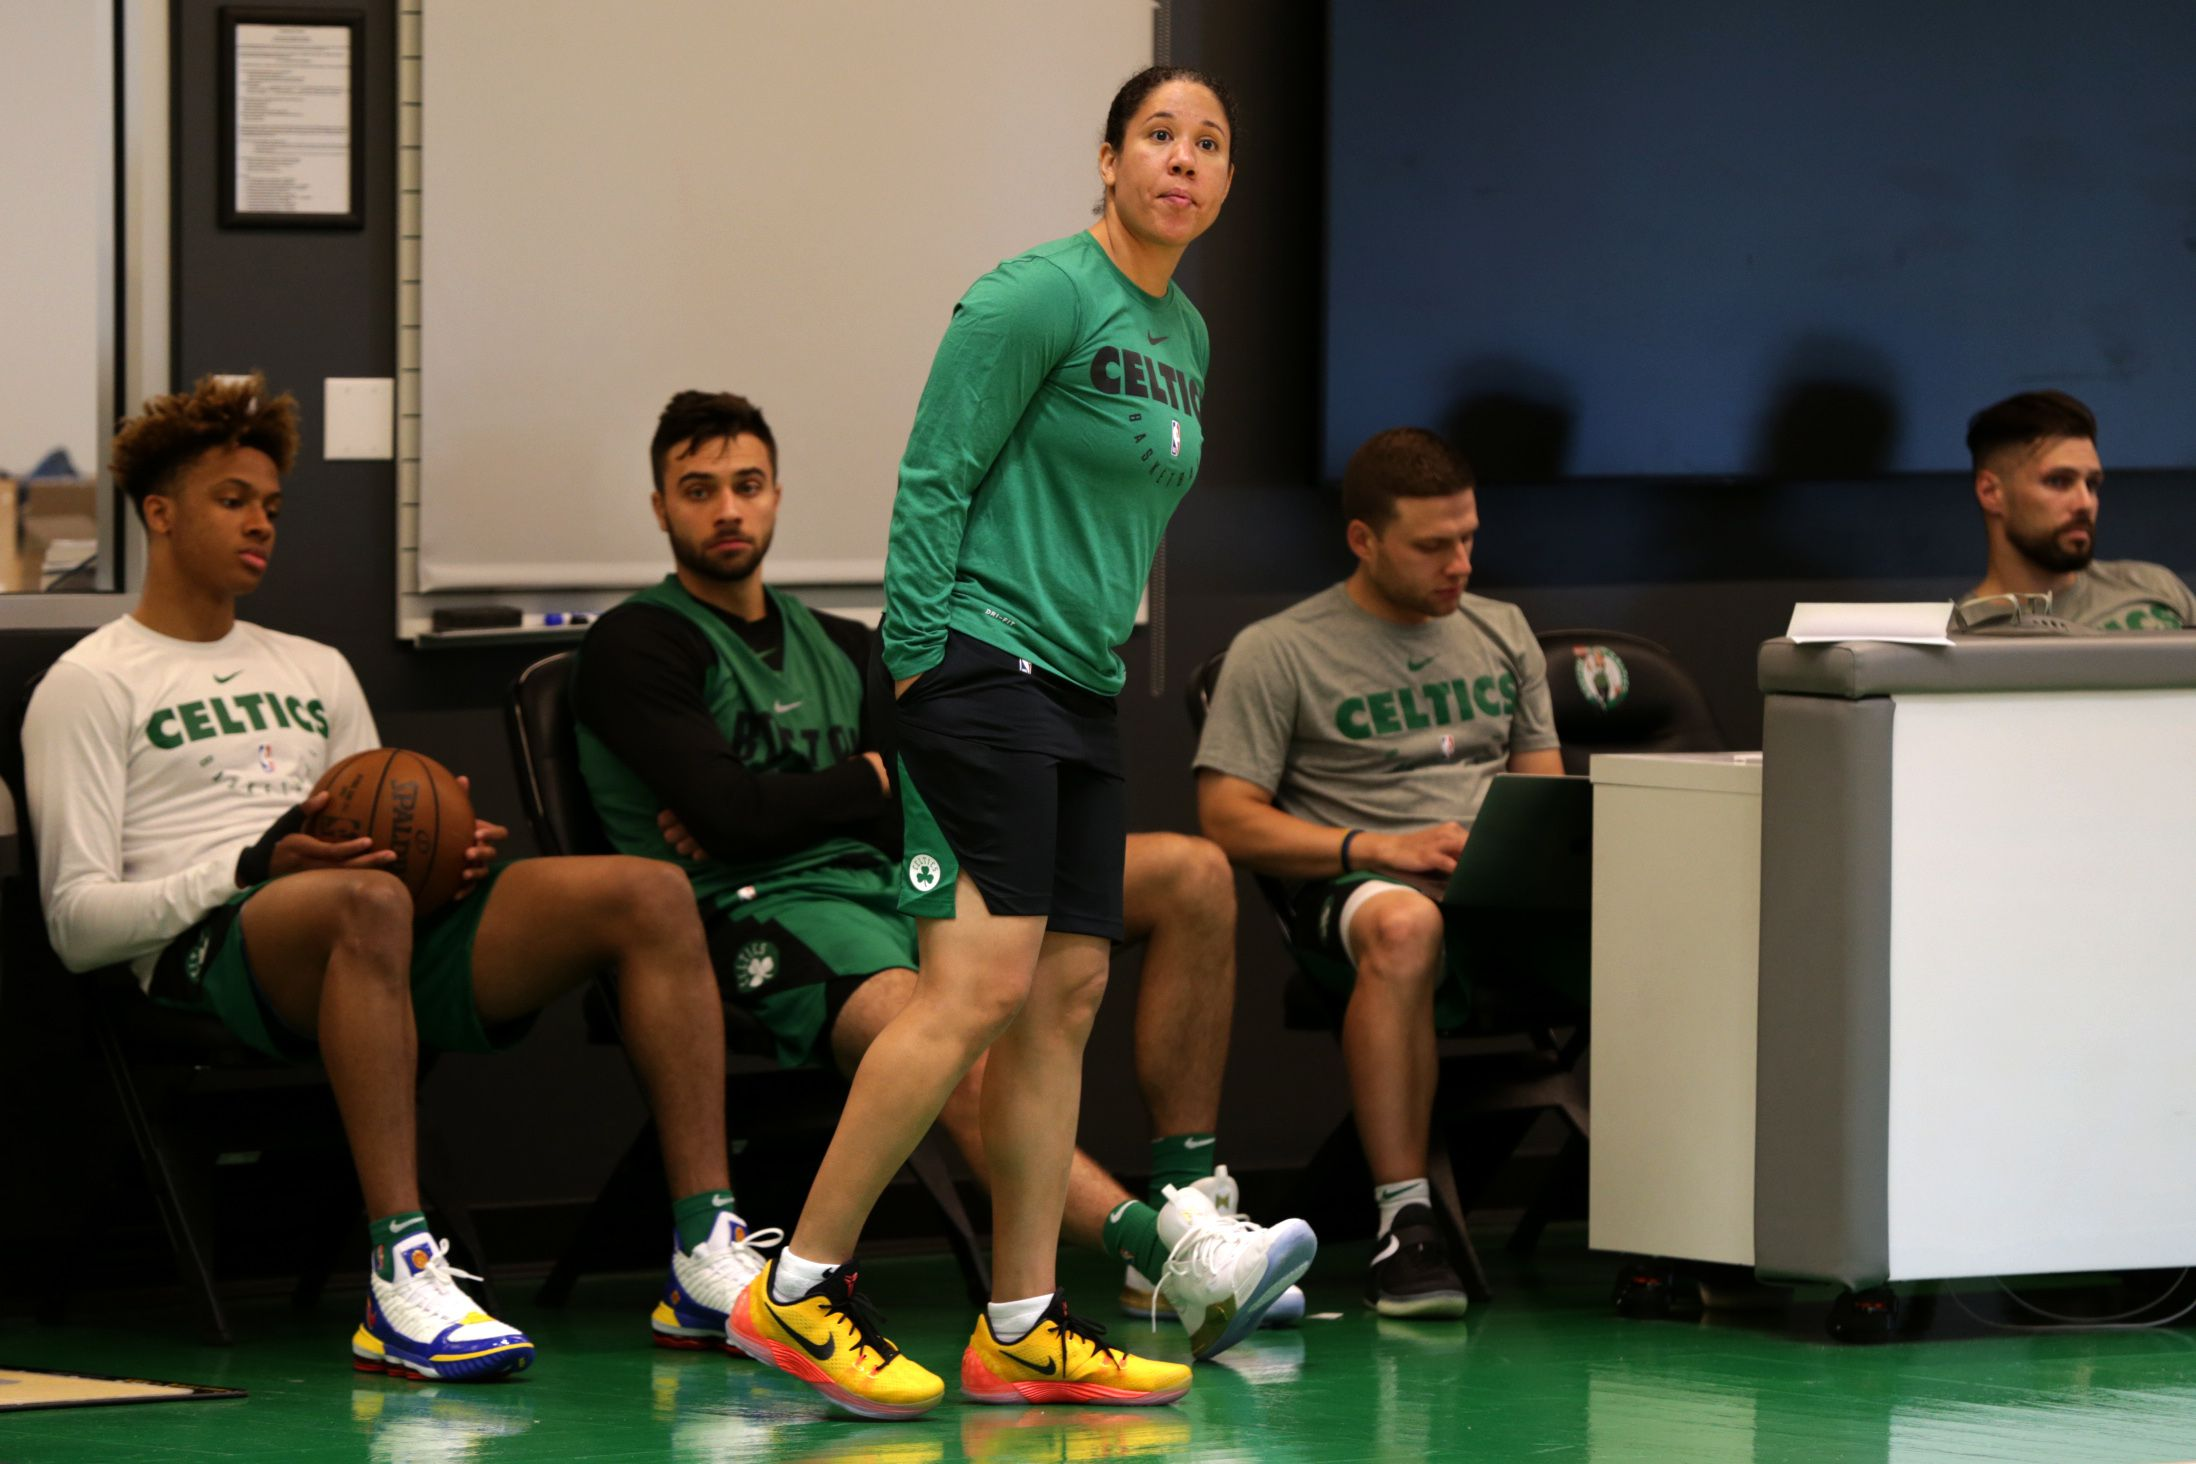 Here S Why The Celtics Made The Right Call In Hiring Kara Lawson The Boston Globe